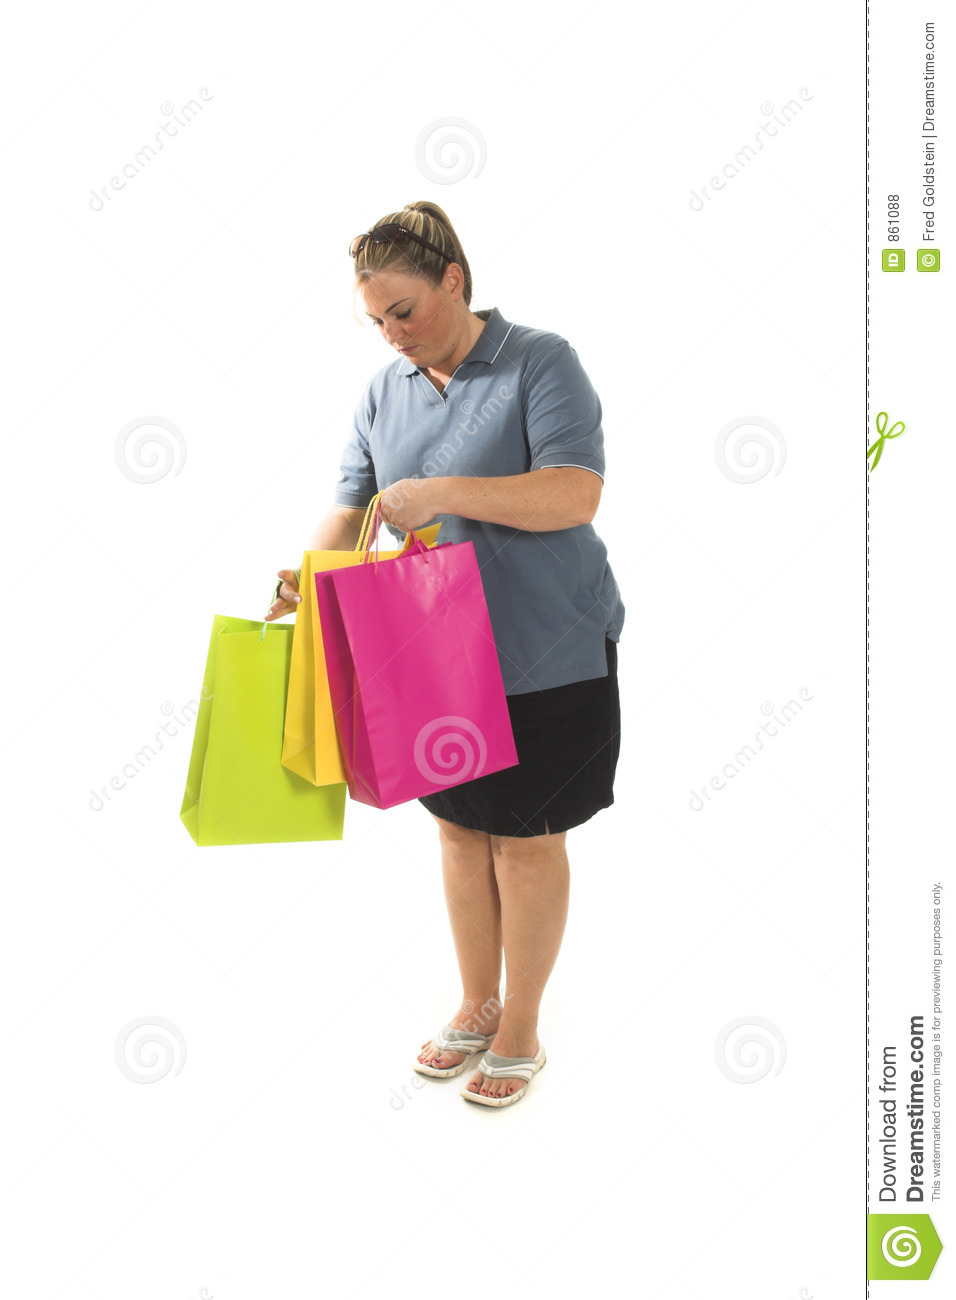 Woman With Shopping Bags Royalty Free Stock Photos - Image: 861088